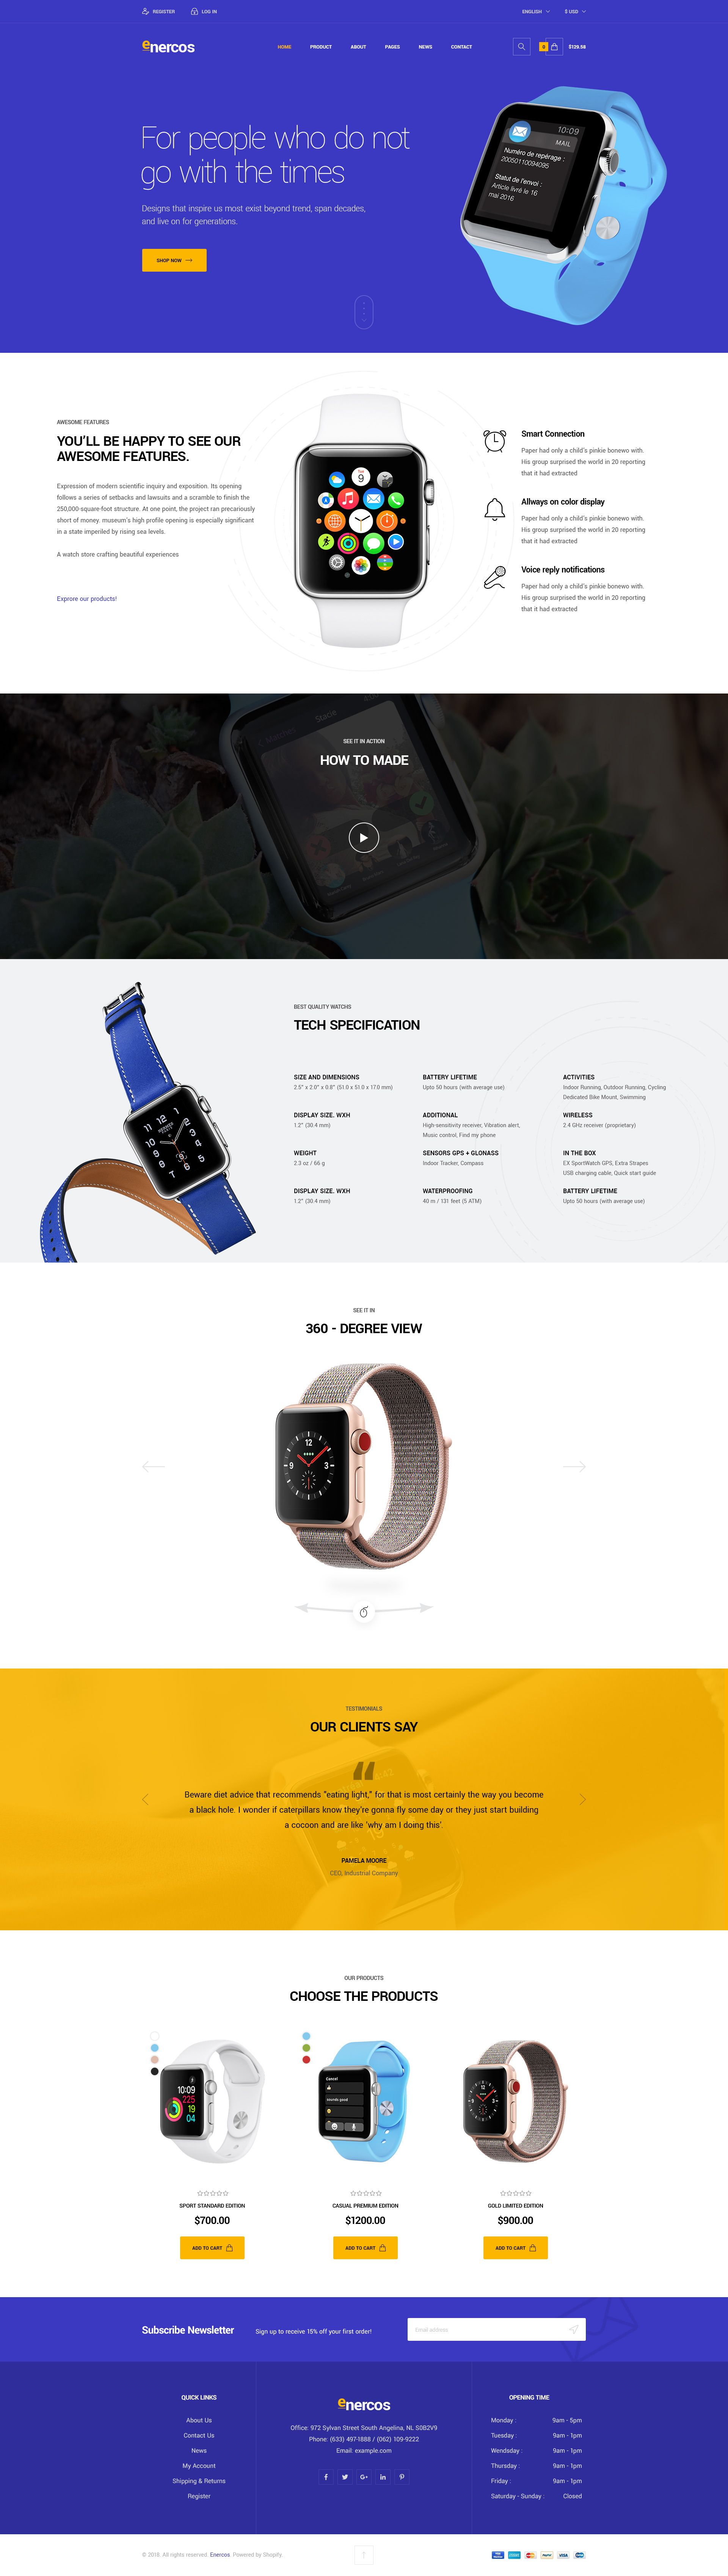 Enercos - Single Product eCommerce Shopify Theme Screenshot 4